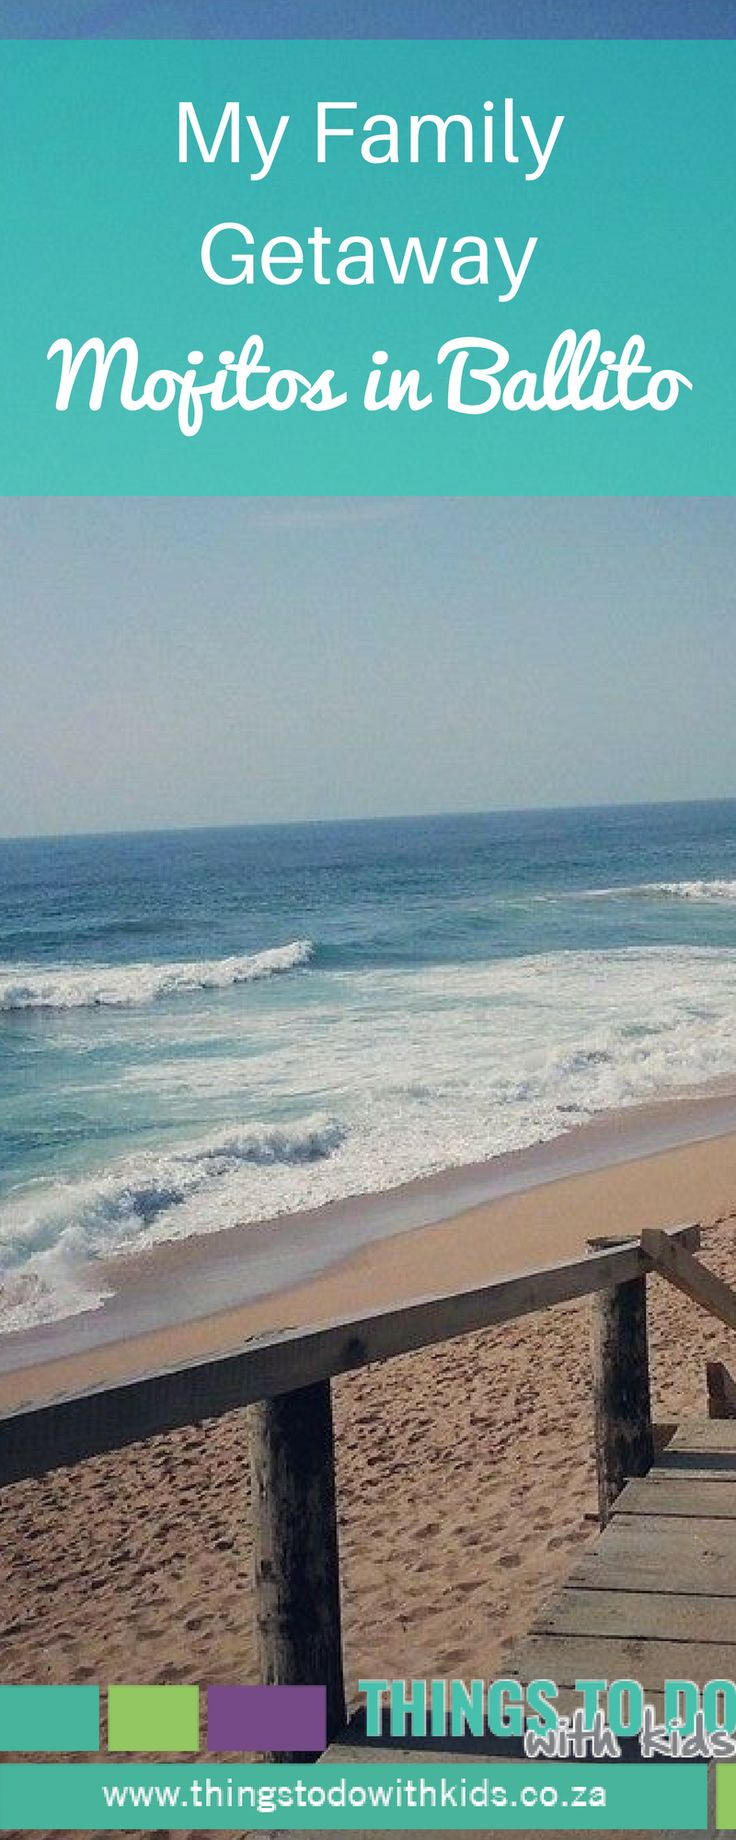 Getaway in Ballito | Holiday ideas in Durban | Things to do with Kids | Ballito, Durban, South Africa | Activities with Kids | Excursions with Kids